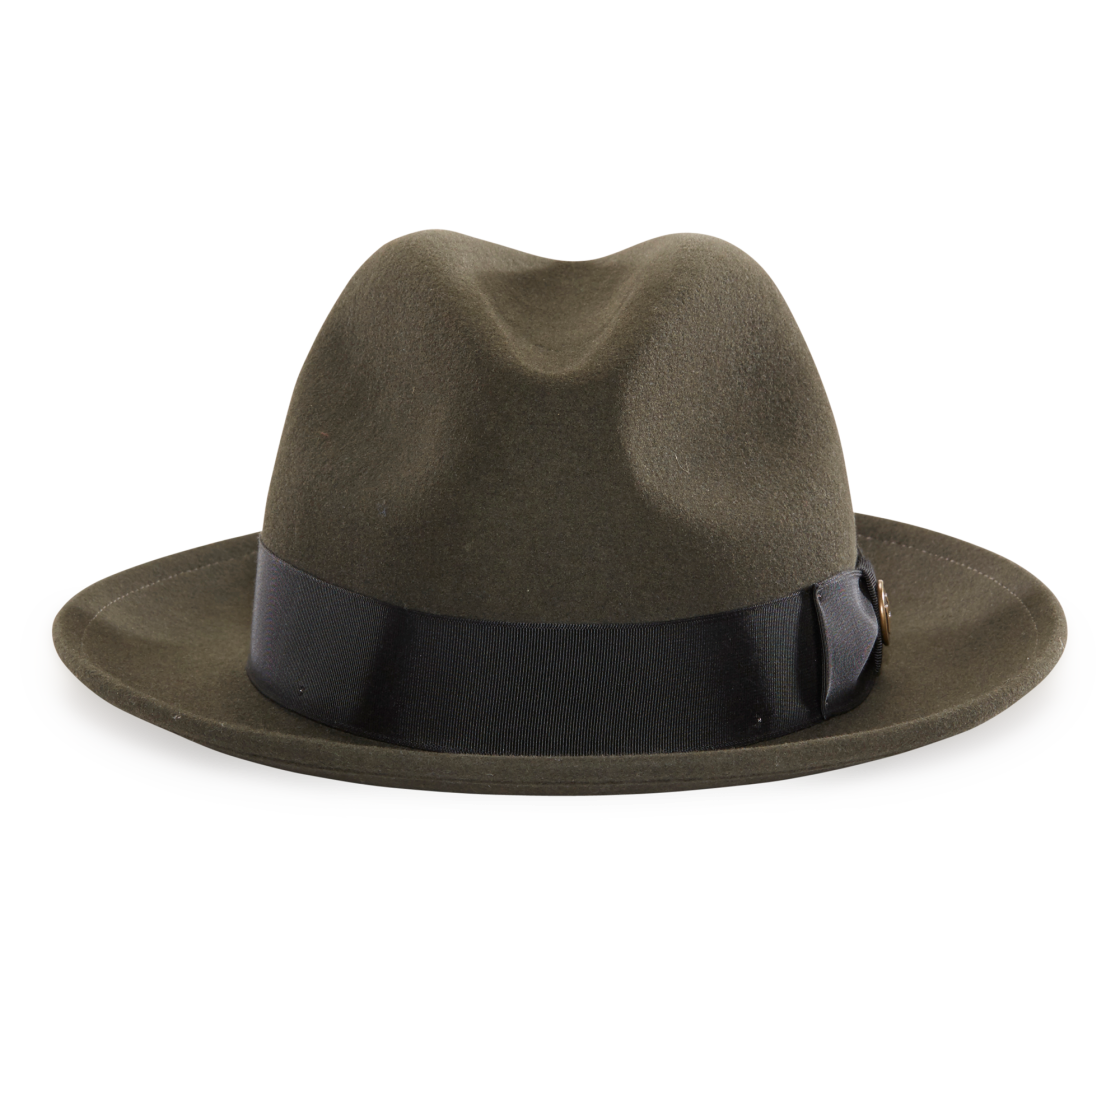 5a3a985ffdcf Dean The Butcher in 2019 | fedoras | Hats, Dress hats, Classic hats